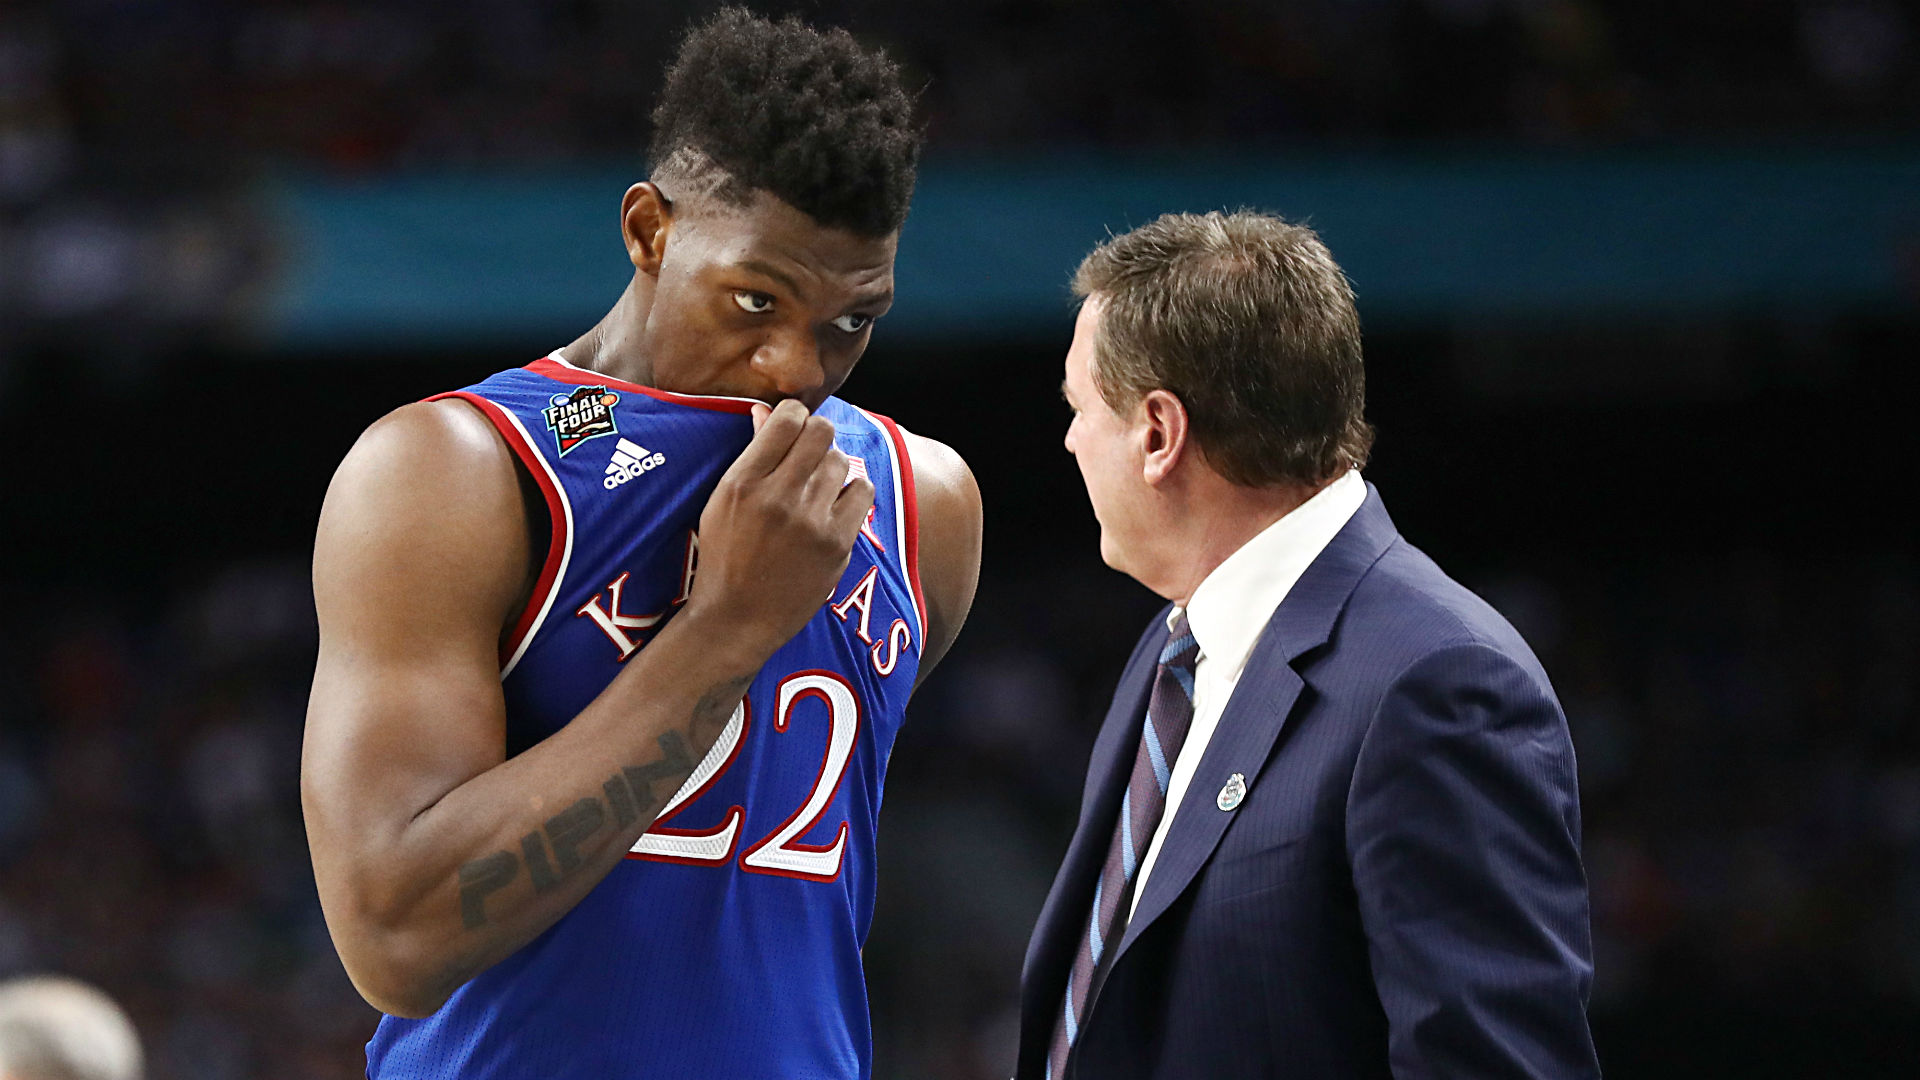 NCAA rules Kansas forward Silvio De Sousa ineligible through 2019-20 season